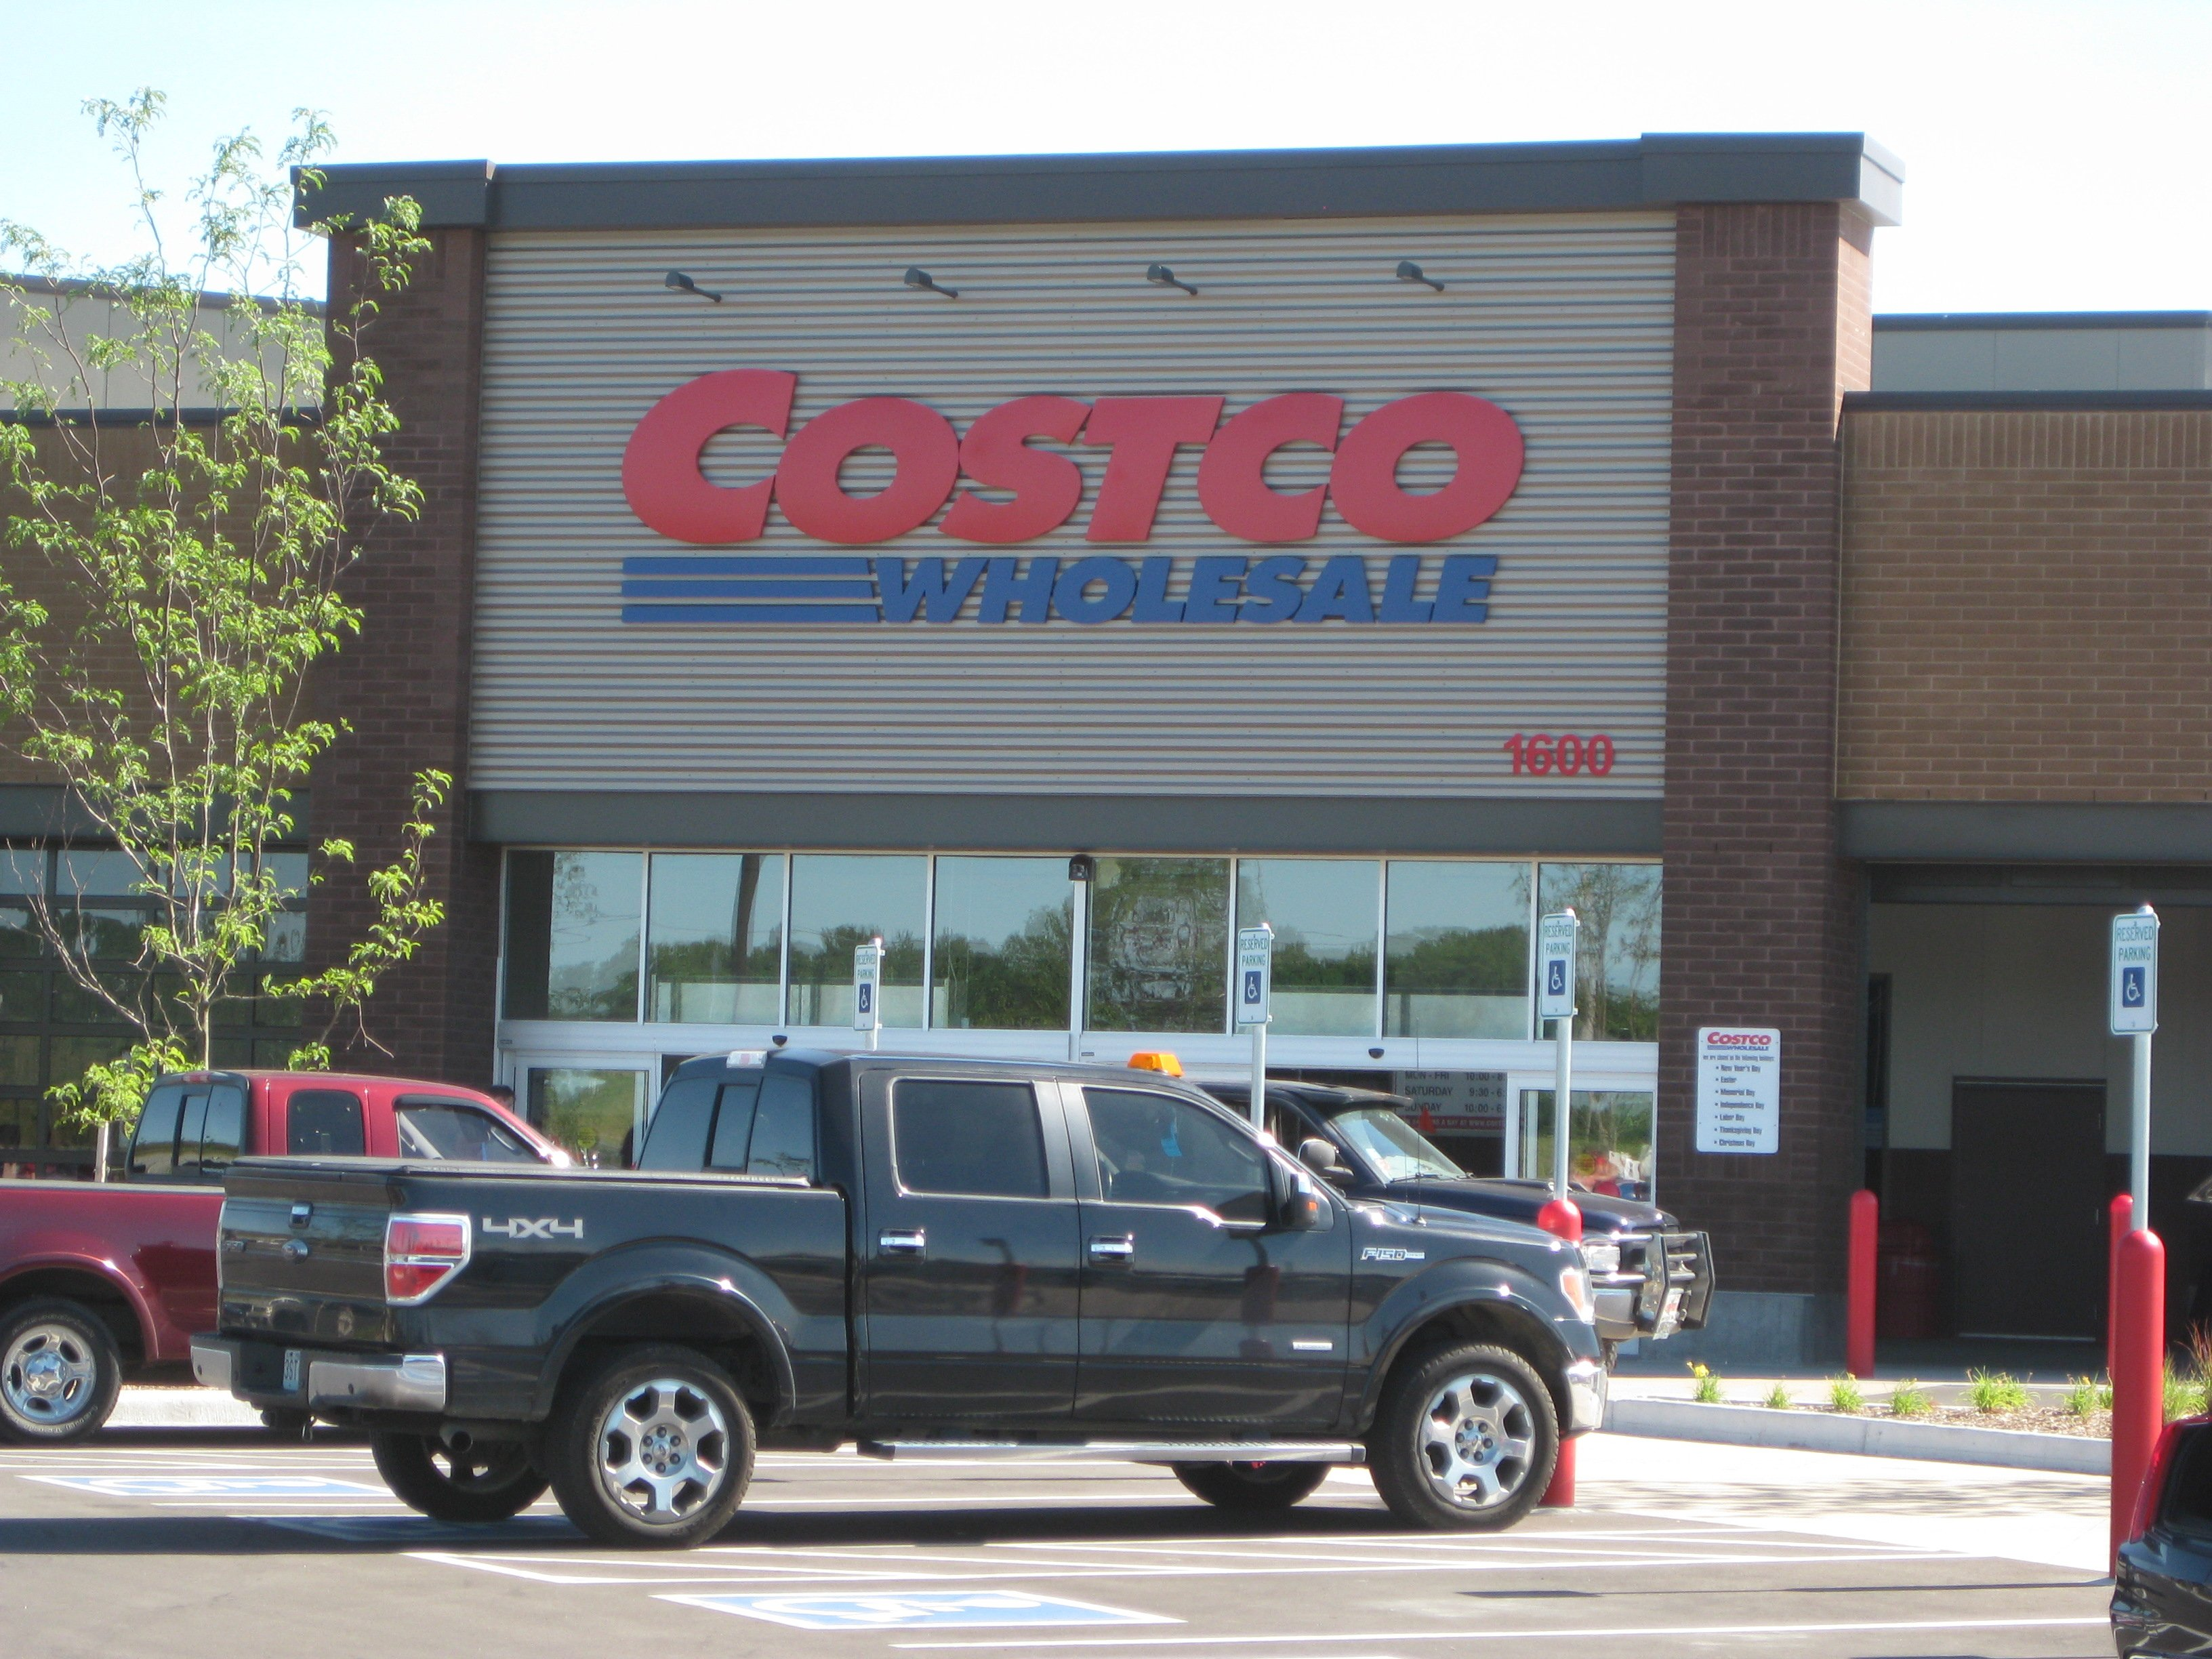 I Finally Went to Costco for the First Time and Absolutely Loved It